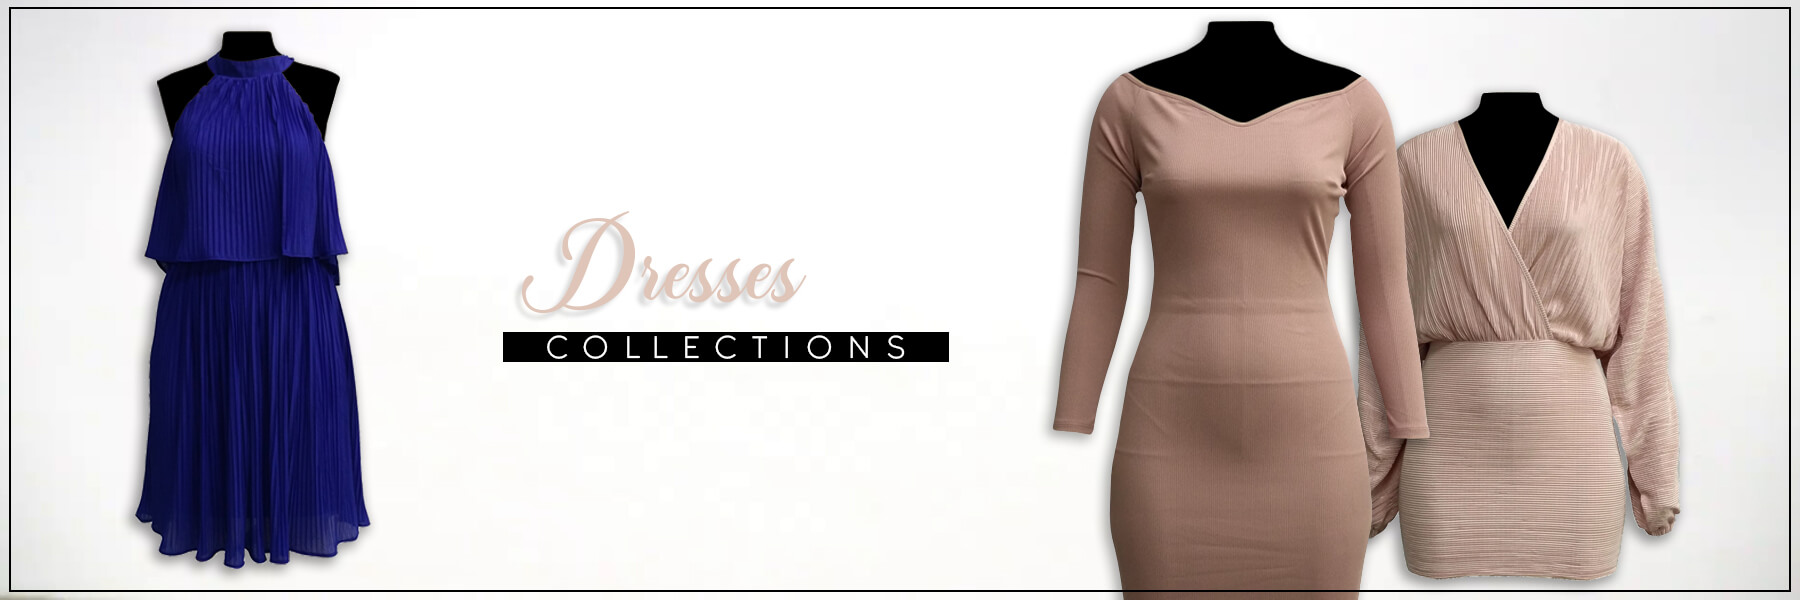 wholesale-women-dresses-clothing-and-garments-supplier-in-dubai-uae-and-middle-east